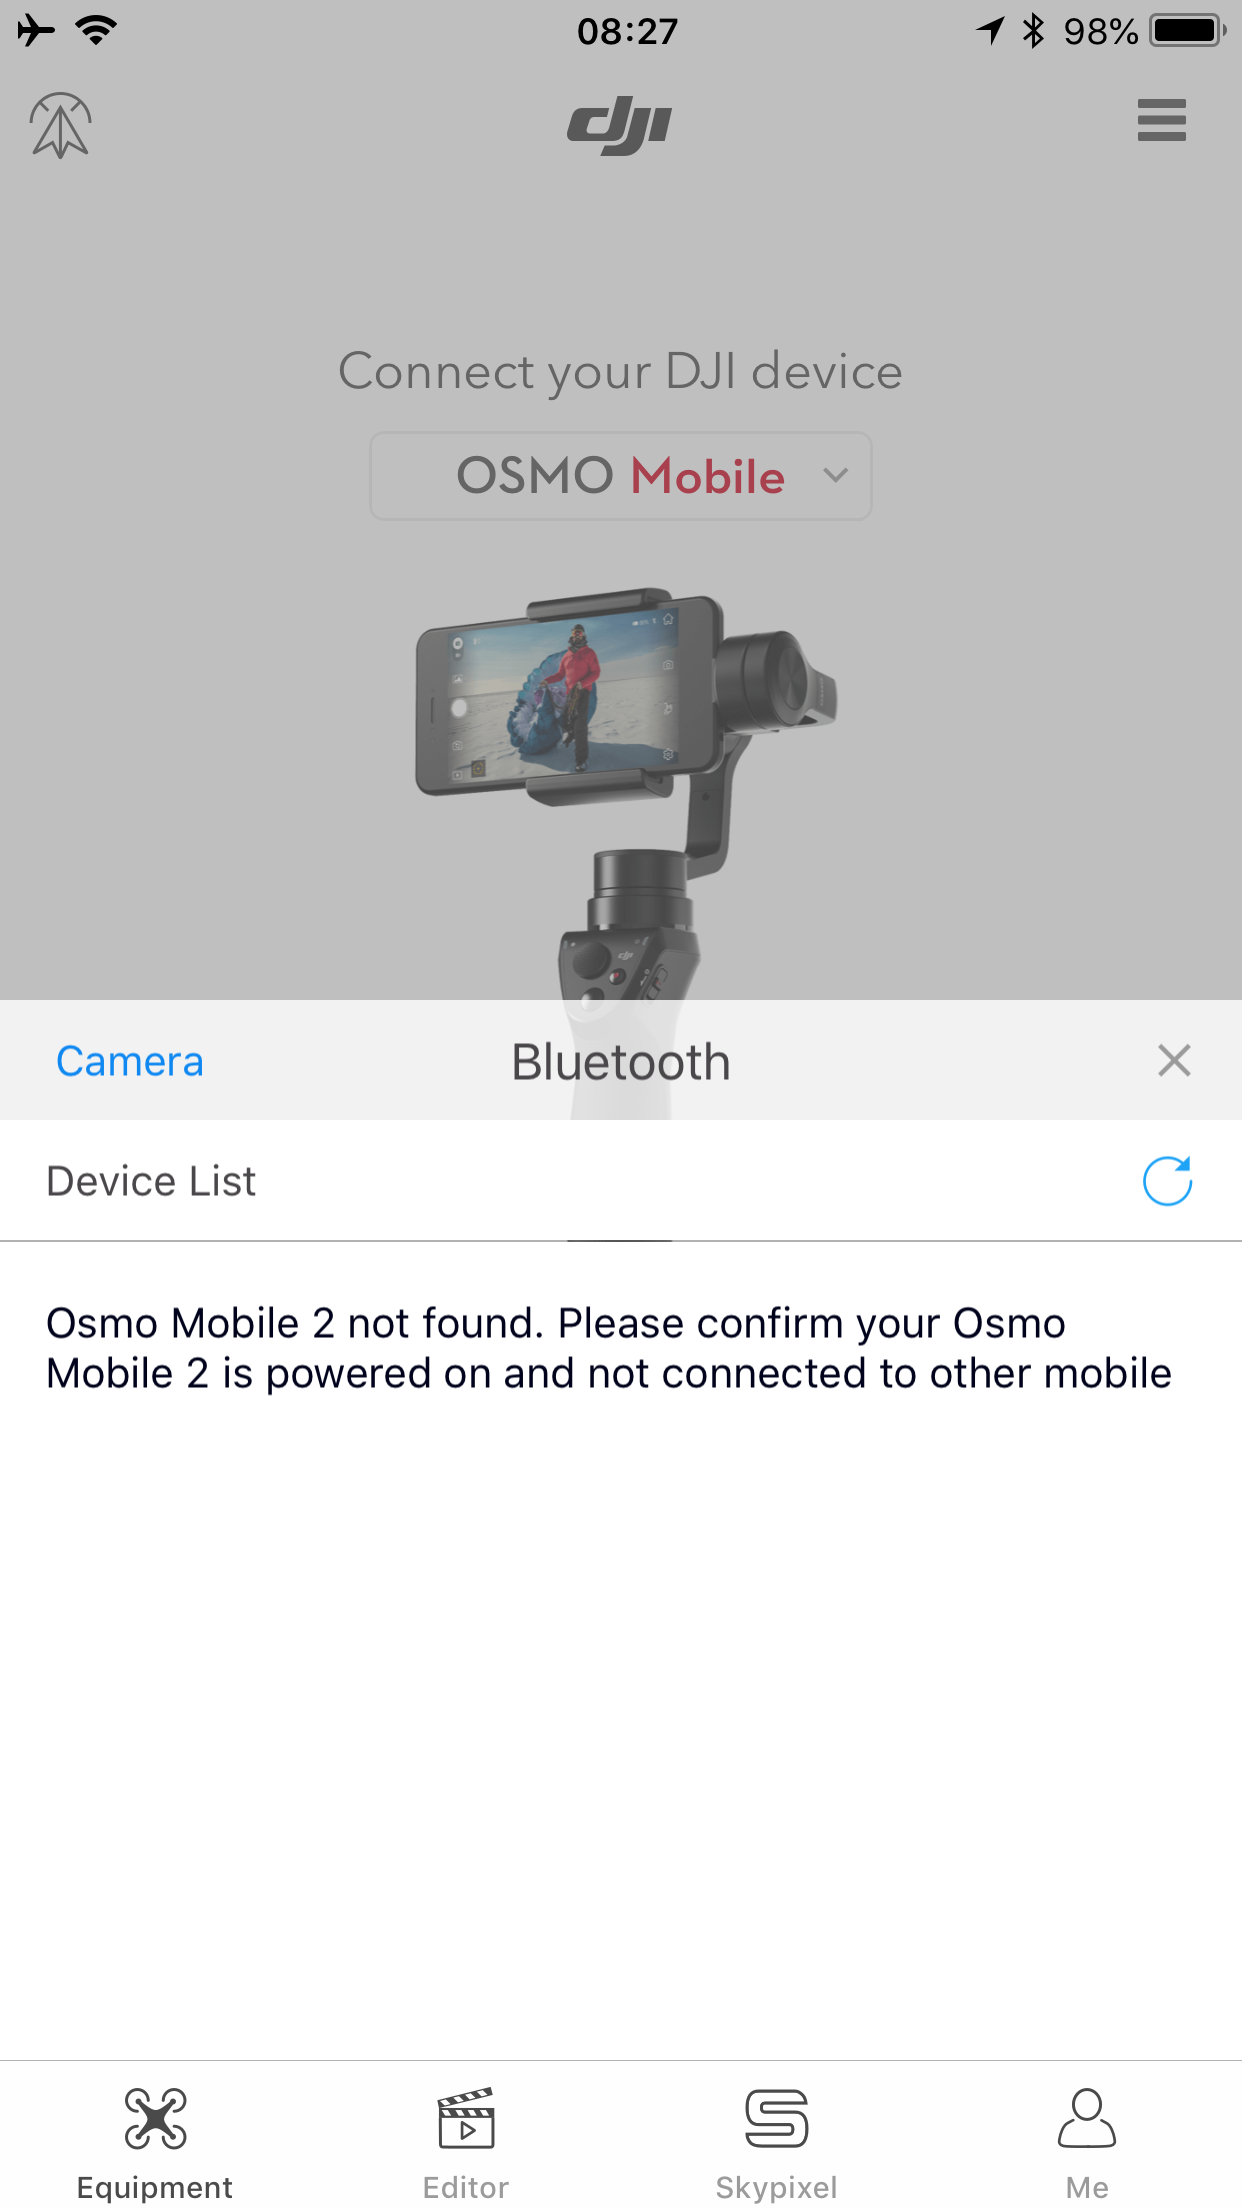 DJI Go trying to connect OSMO Mobile 2 when selecting OSMO Mobile